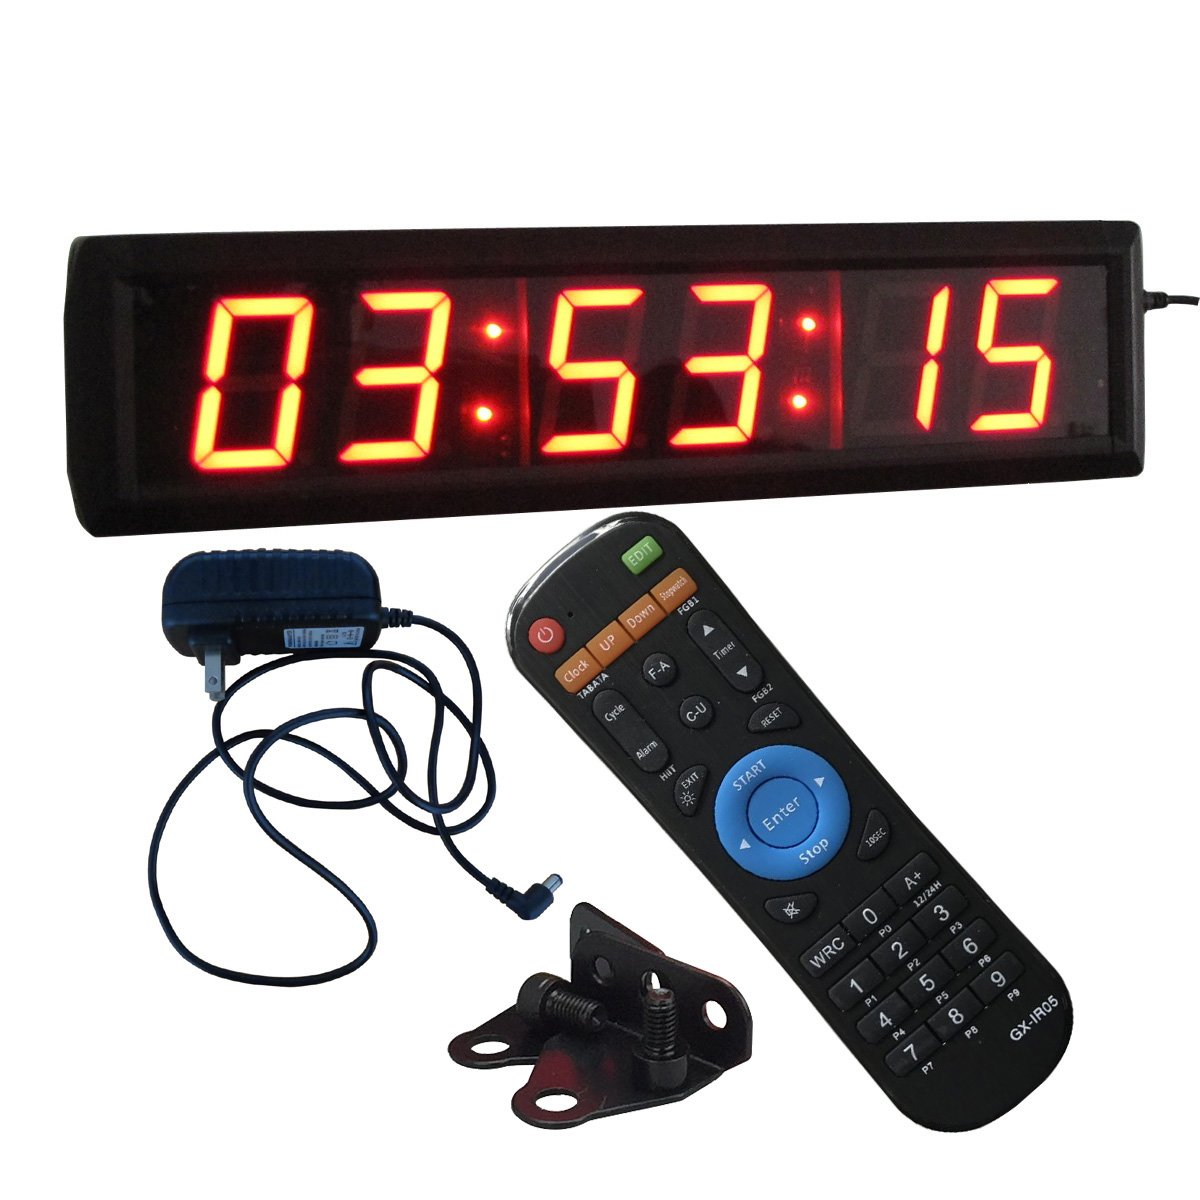 Ledgital Countdown Clock 23 High Character Led For Beginners Digital With 7segments And Rtc W Remote Control Indoor Only Home Kitchen